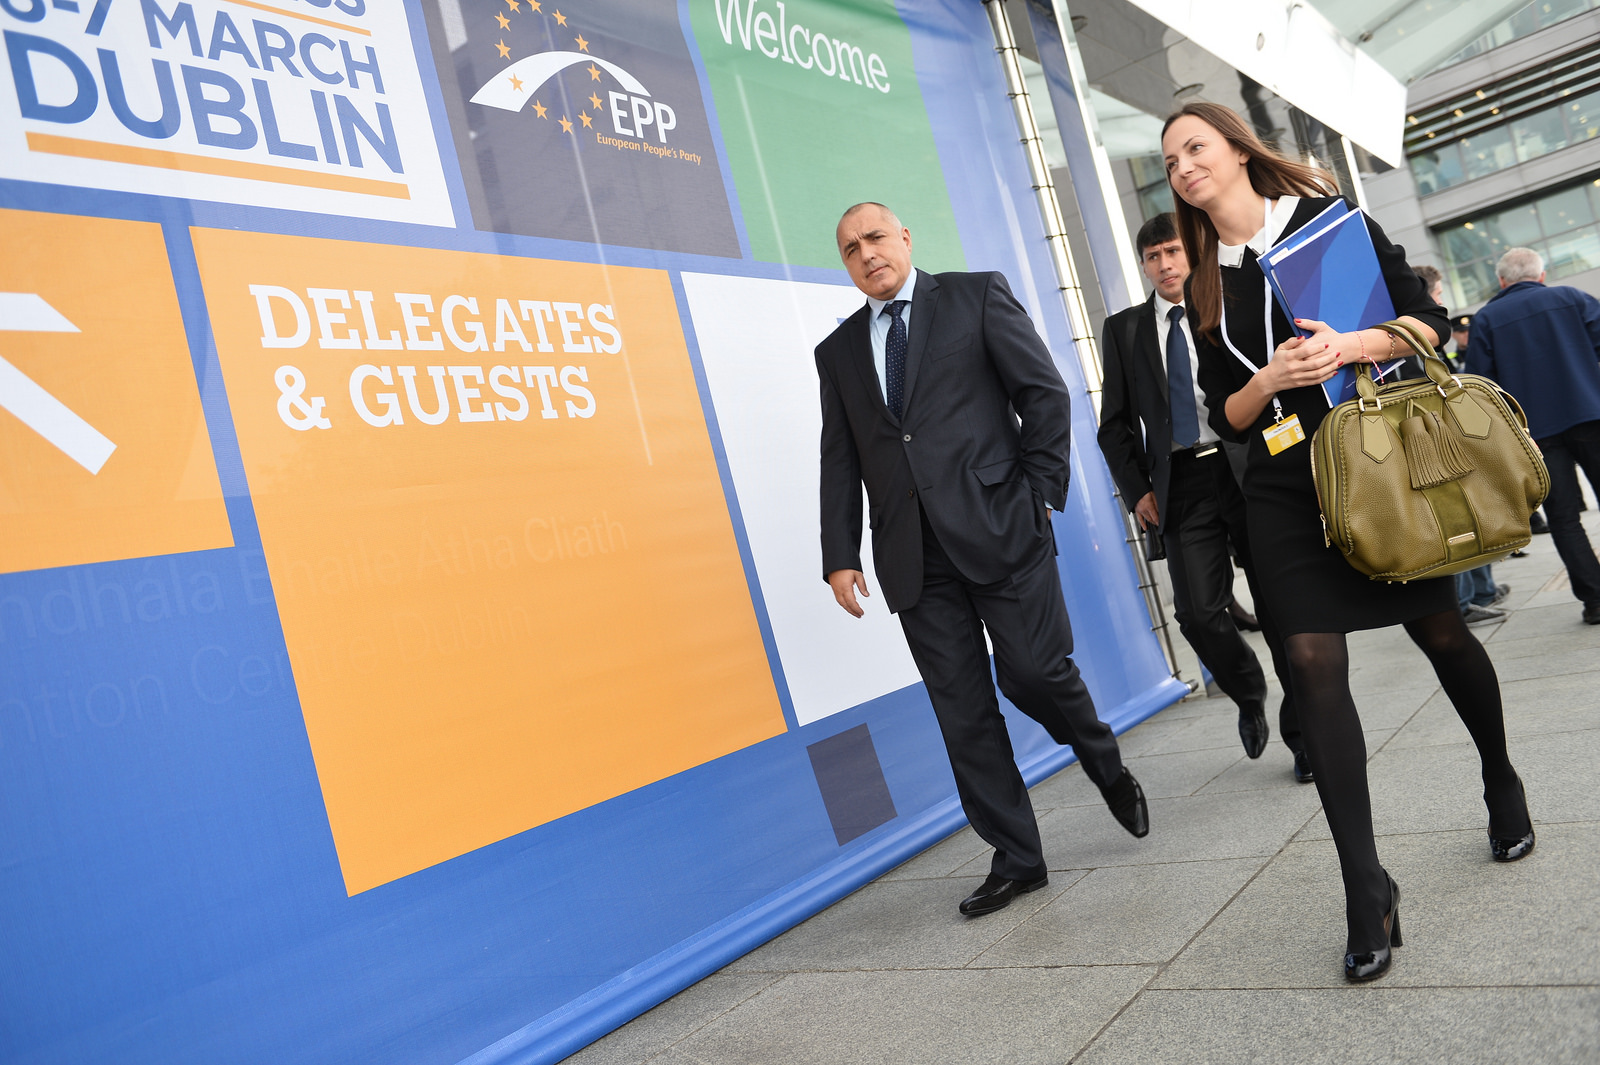 Delegates of the European People's Party at the electoral congress in Dublin, March 2014 [EPP]